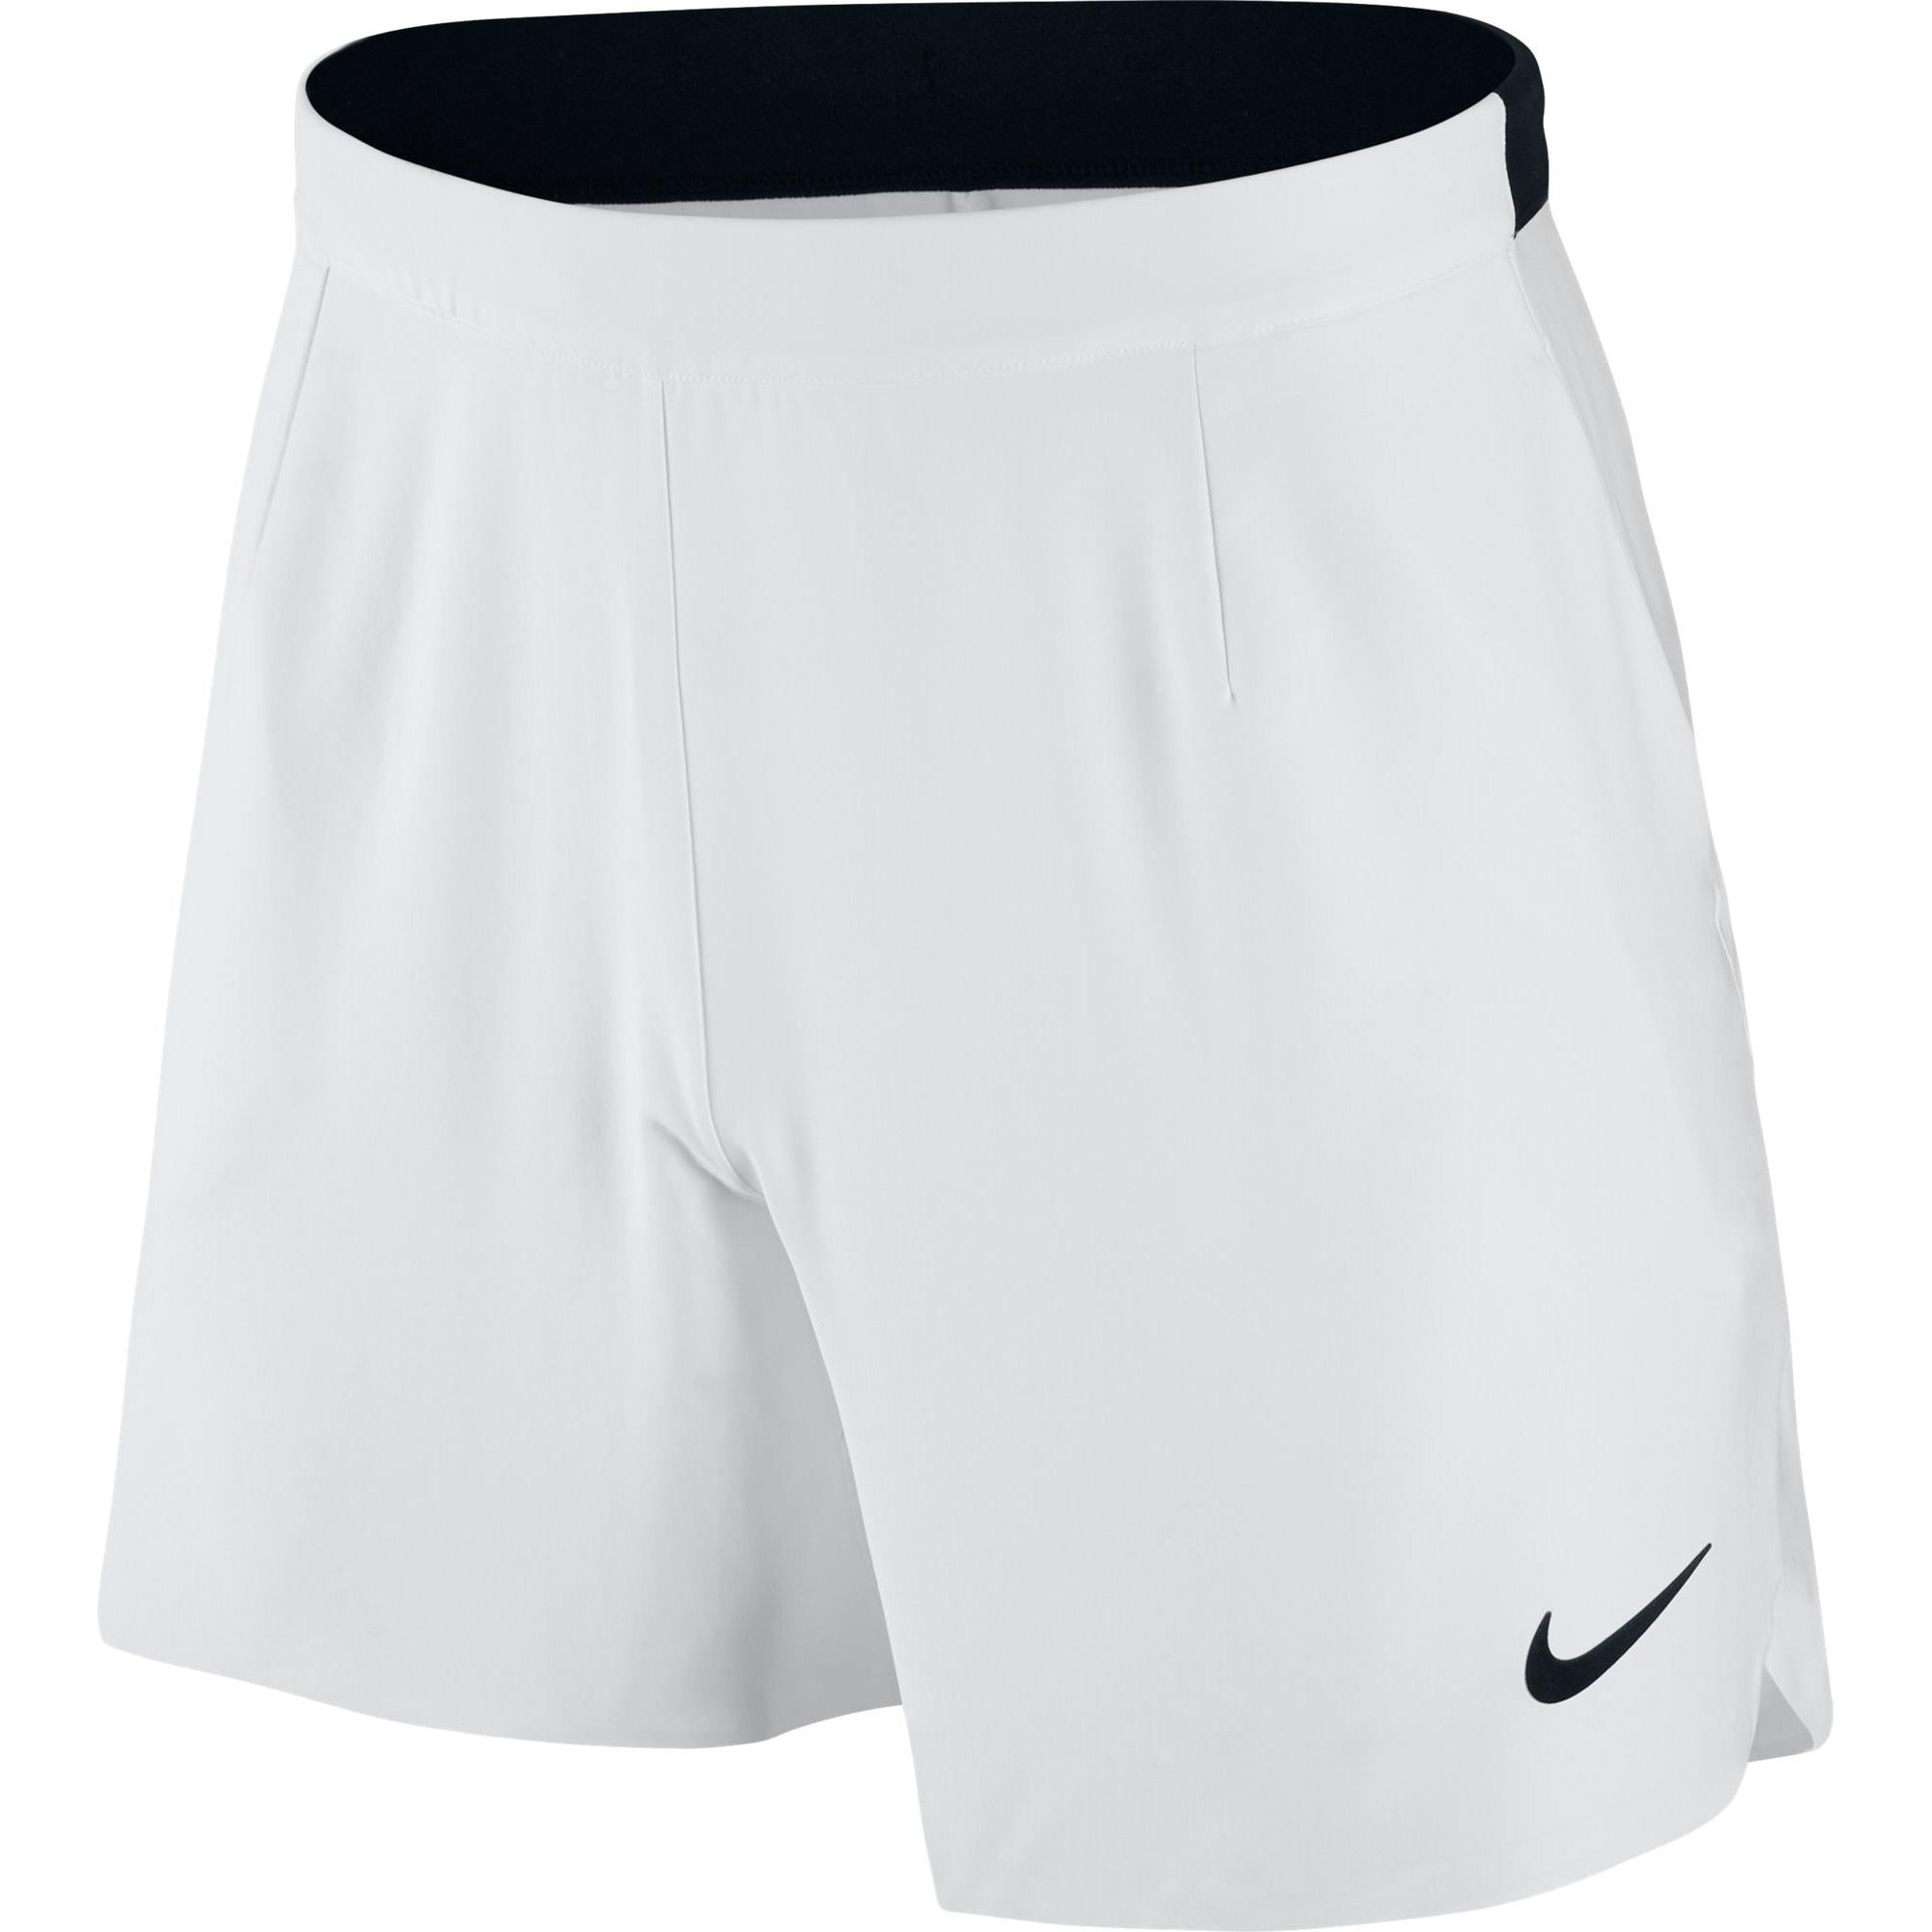 "Men's Nike Court Flex Tennis Shorts 7"".         830835-100"